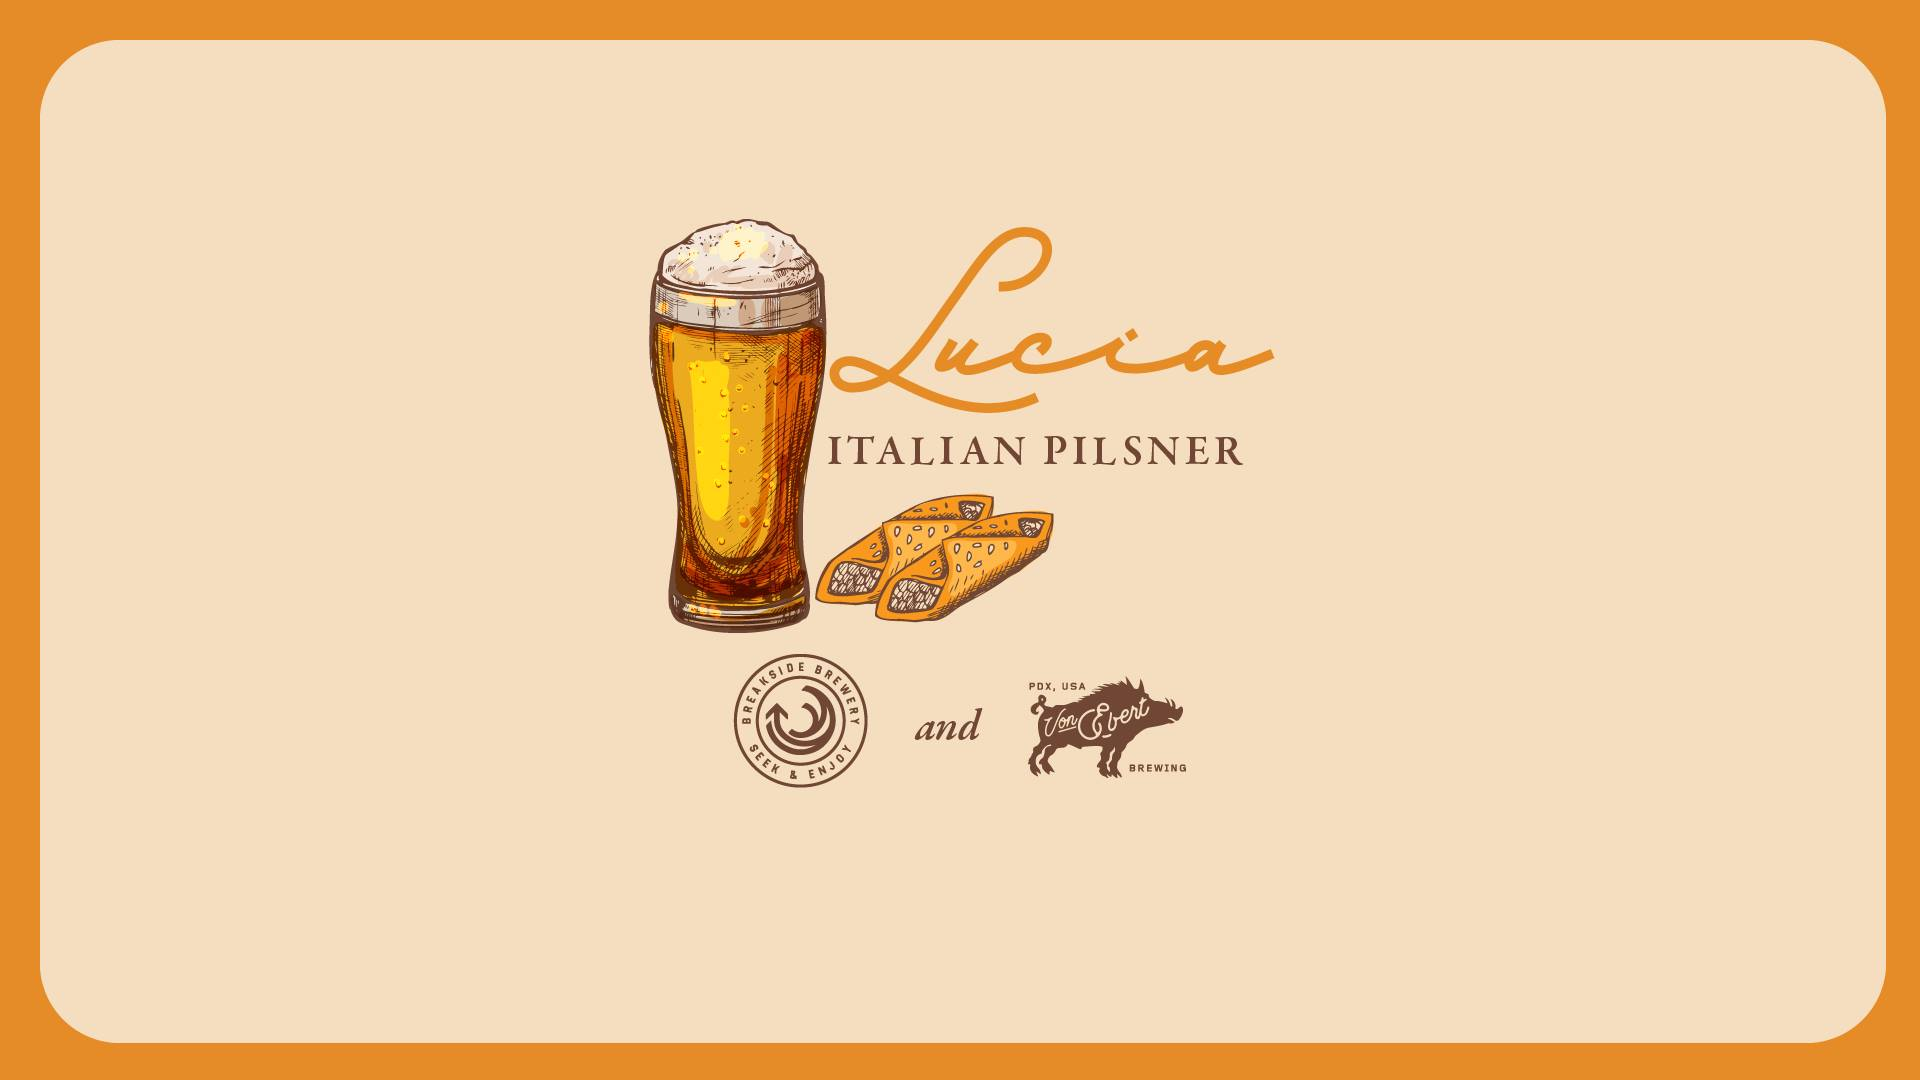 Lucia Italian Pilsner from Breakside Brewery and Von Ebert Brewing